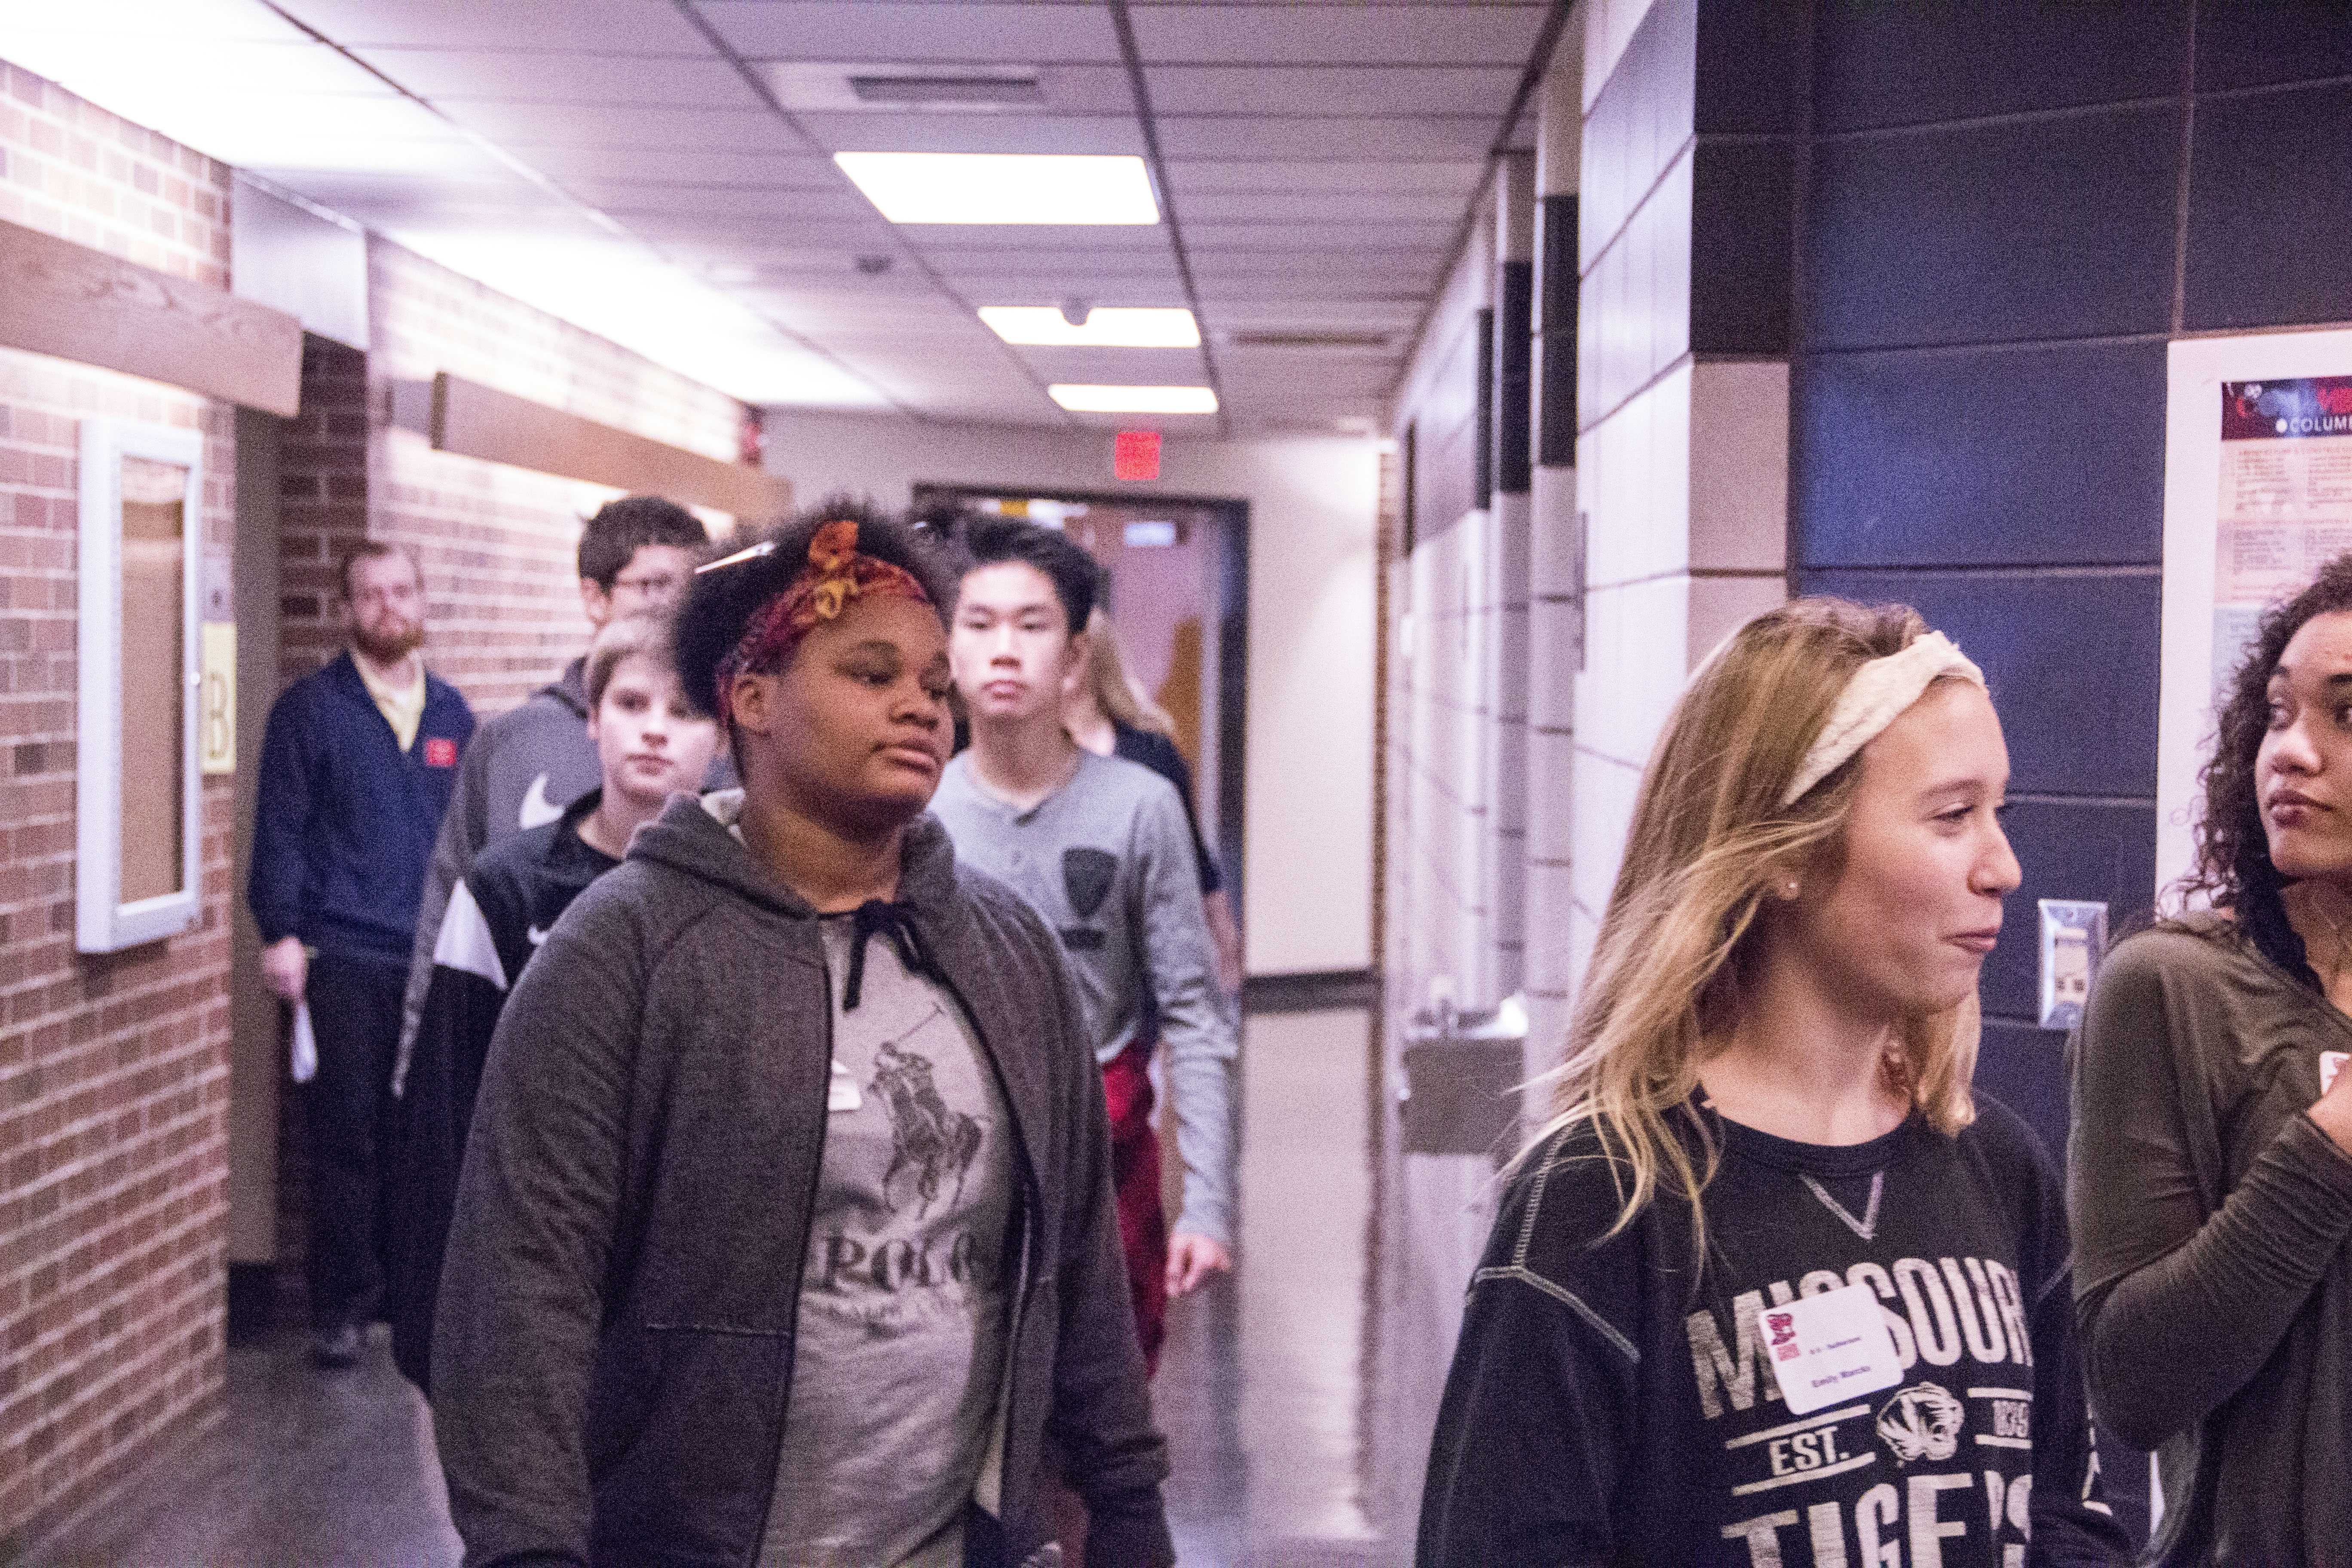 Students walk the halls of the Columbia Area Career Center (CACC) after listening to a demonstration.